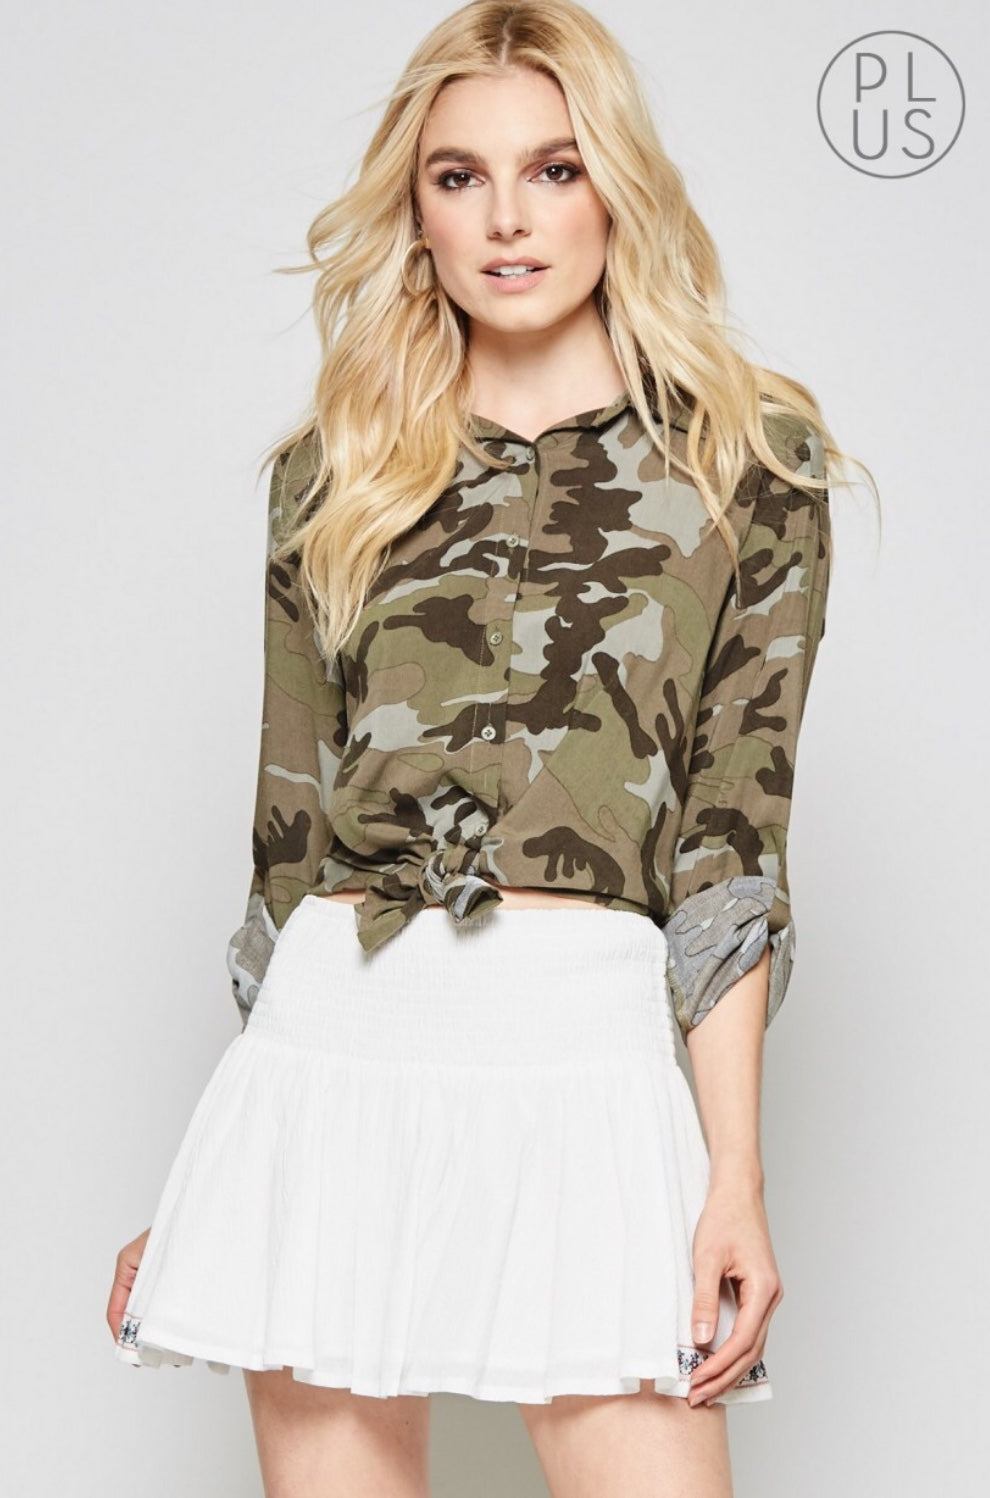 Eloise Embroidered Patch Button Up Top - Camo